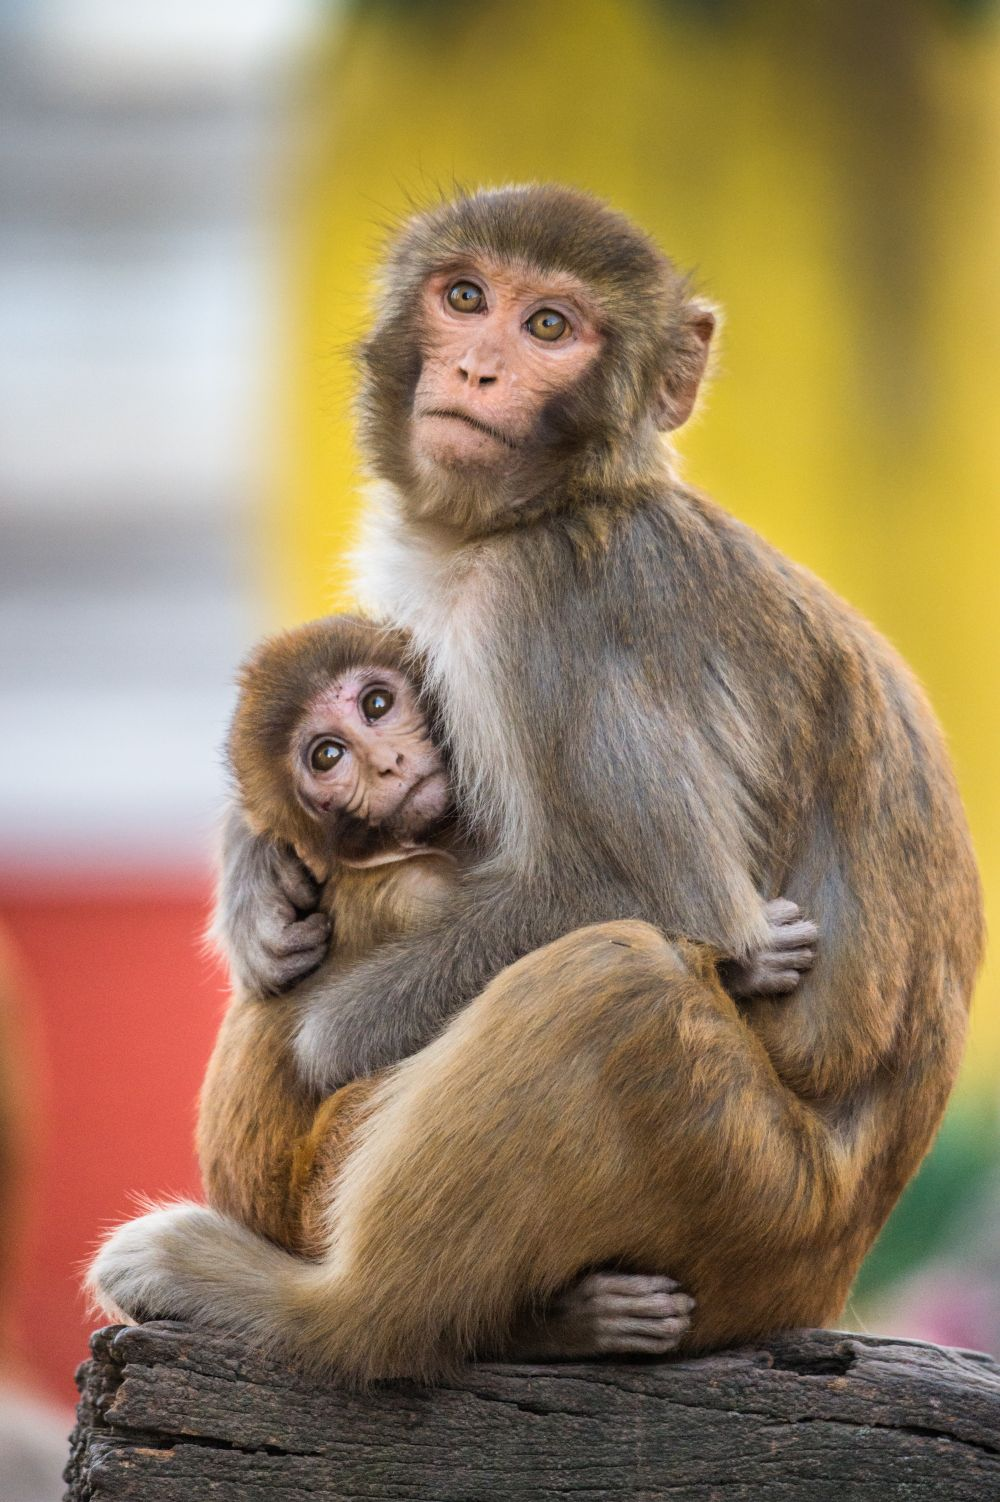 Free-living rhesus mother and baby, credit Jo-Anne McArthur / We Animals